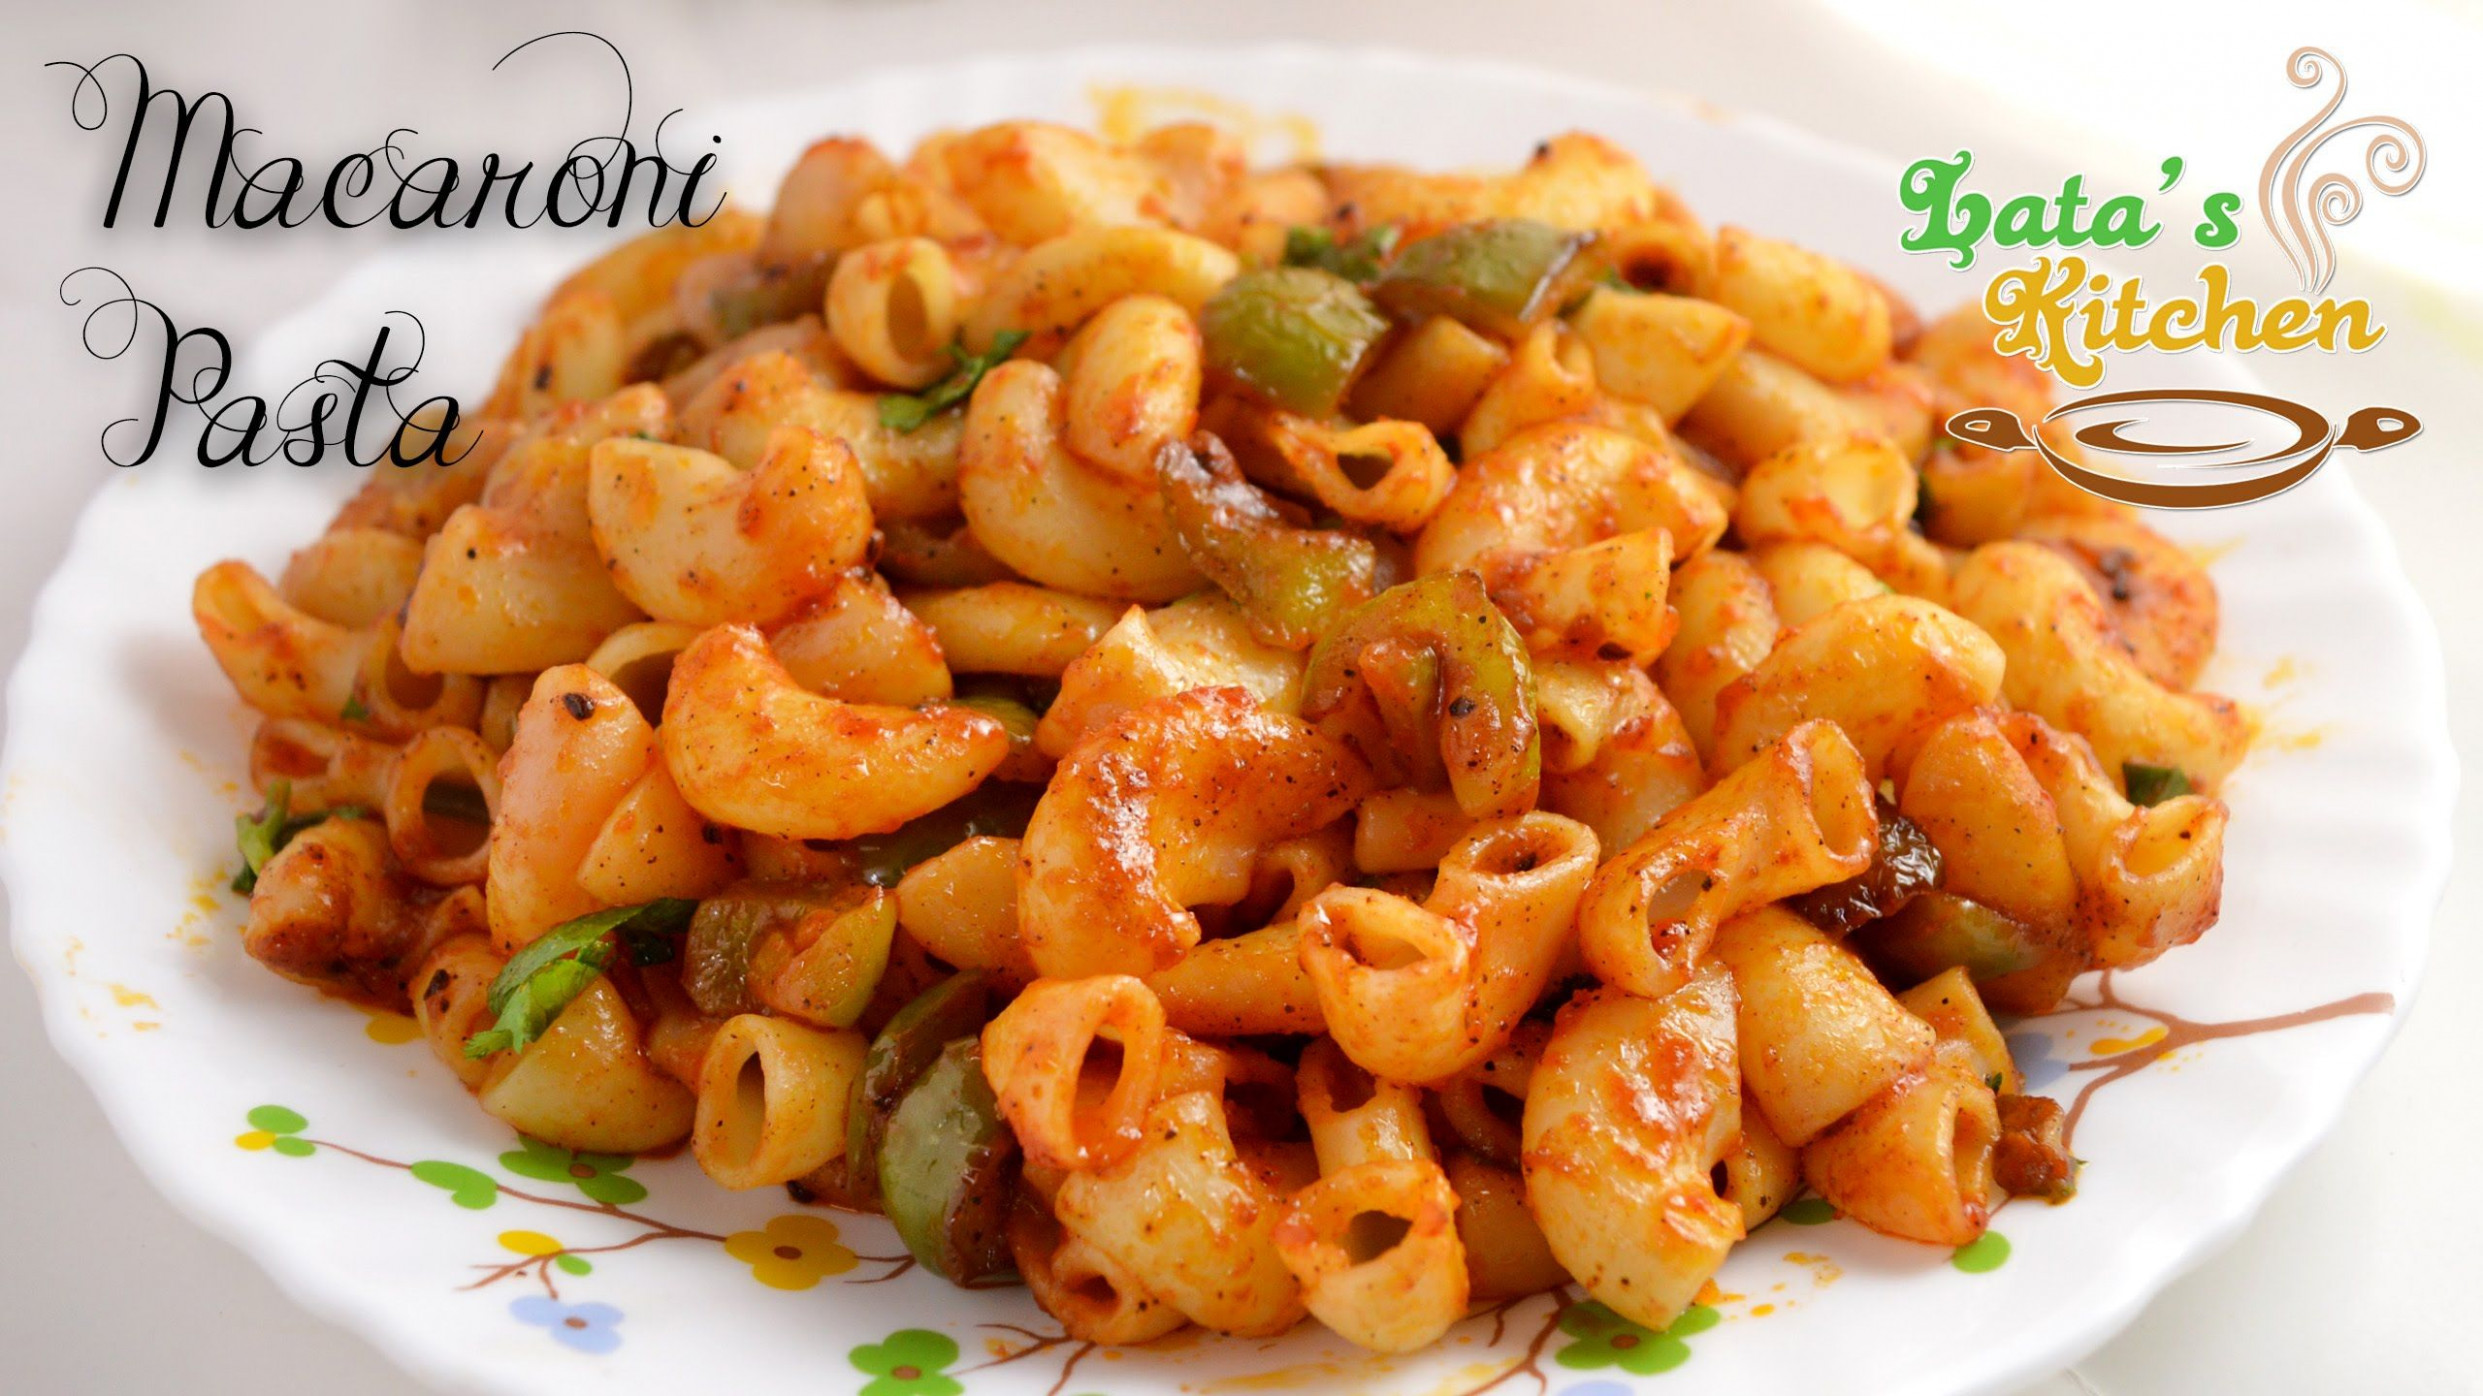 Macaroni Pasta Recipe - Indian Style Macaroni Pasta Recipe ...